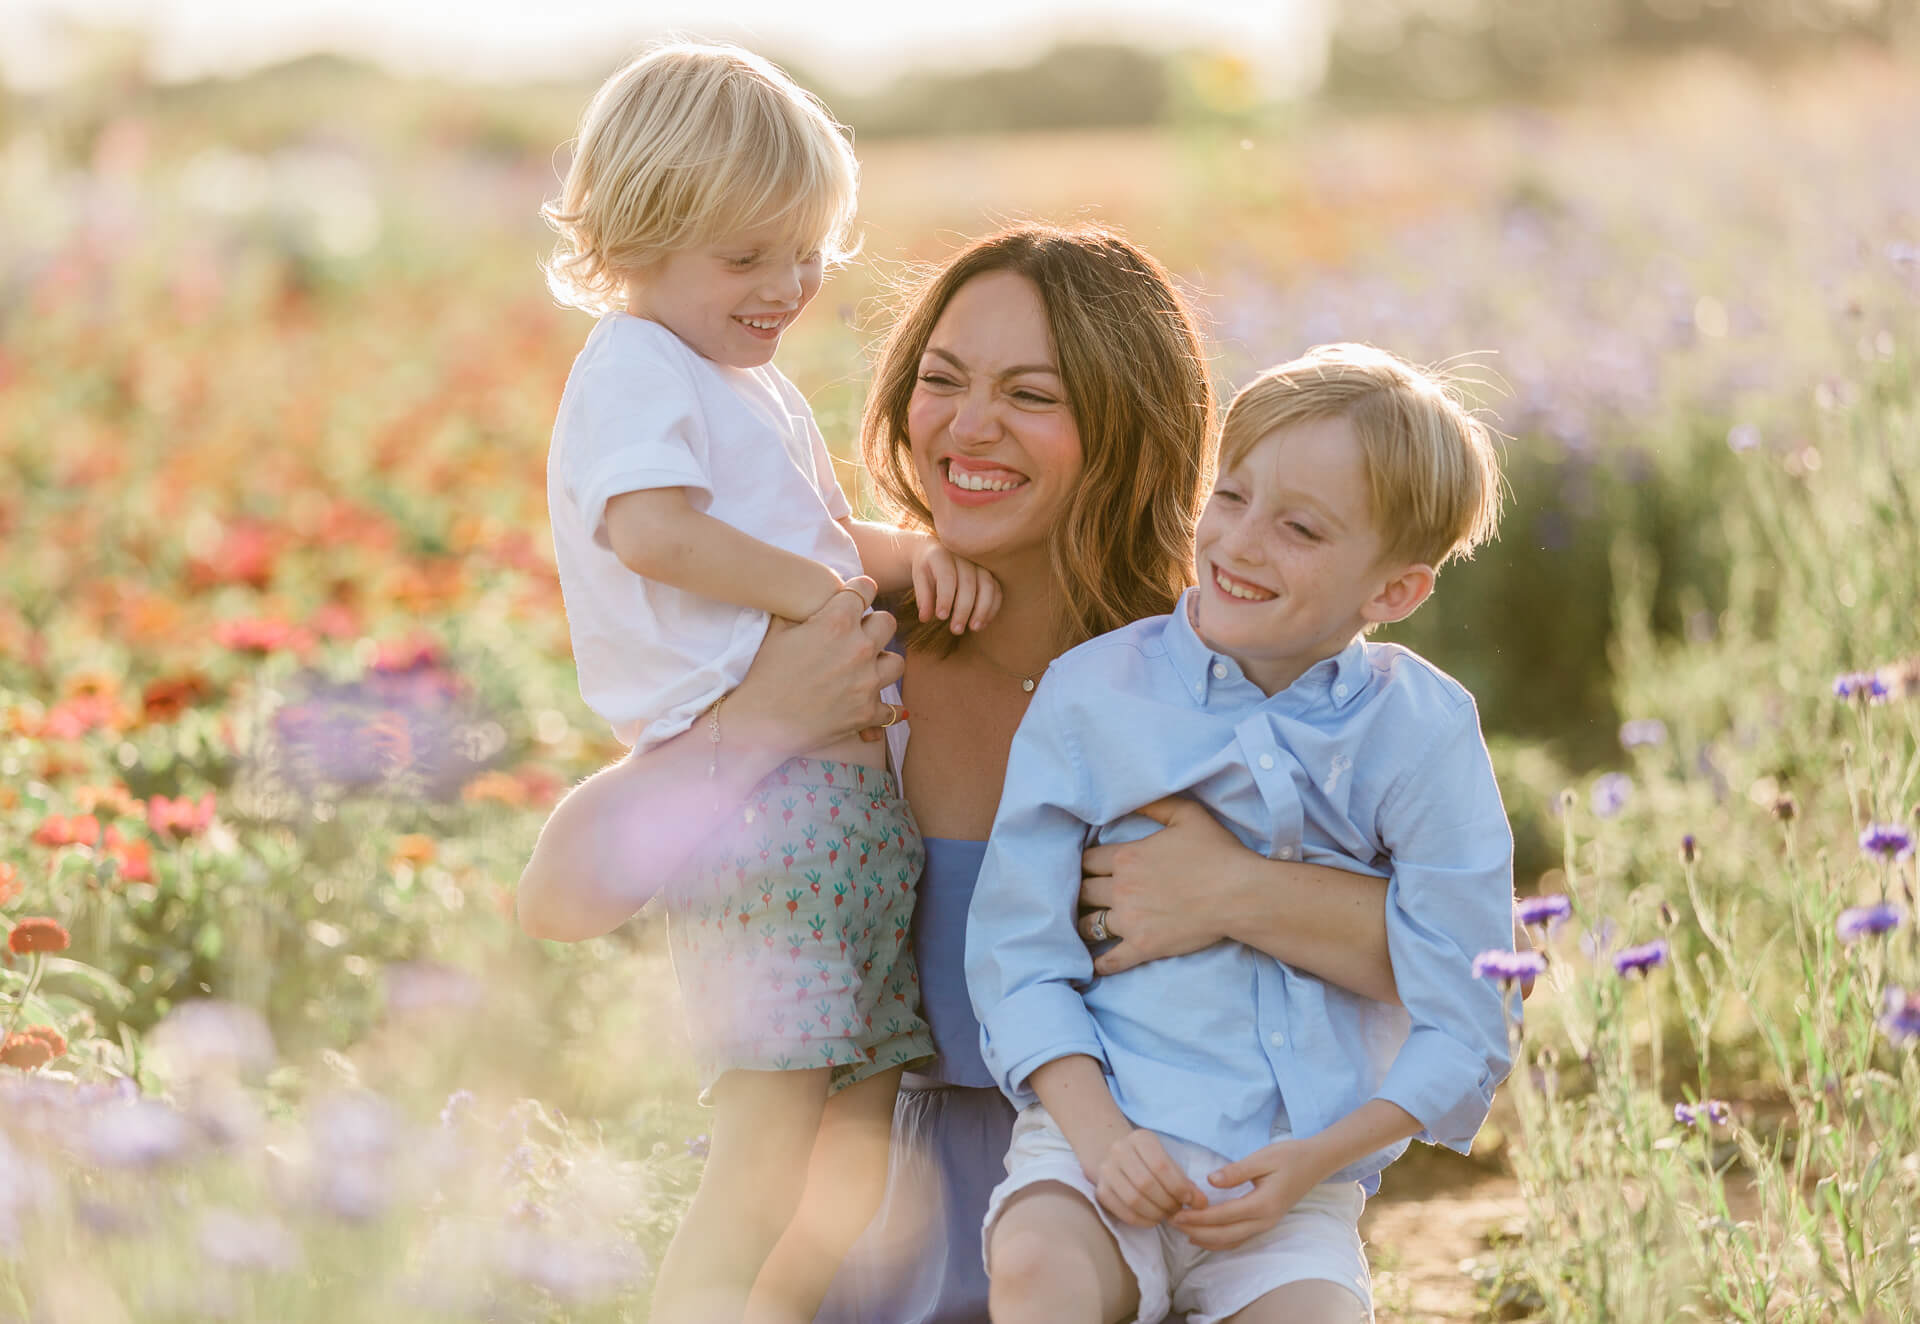 Pricing Chelmsford photographer featuring Mother and happy boys at sunset in flower meadow on Pricing page information by Chelmsford photographer Kika Mitchell Photography